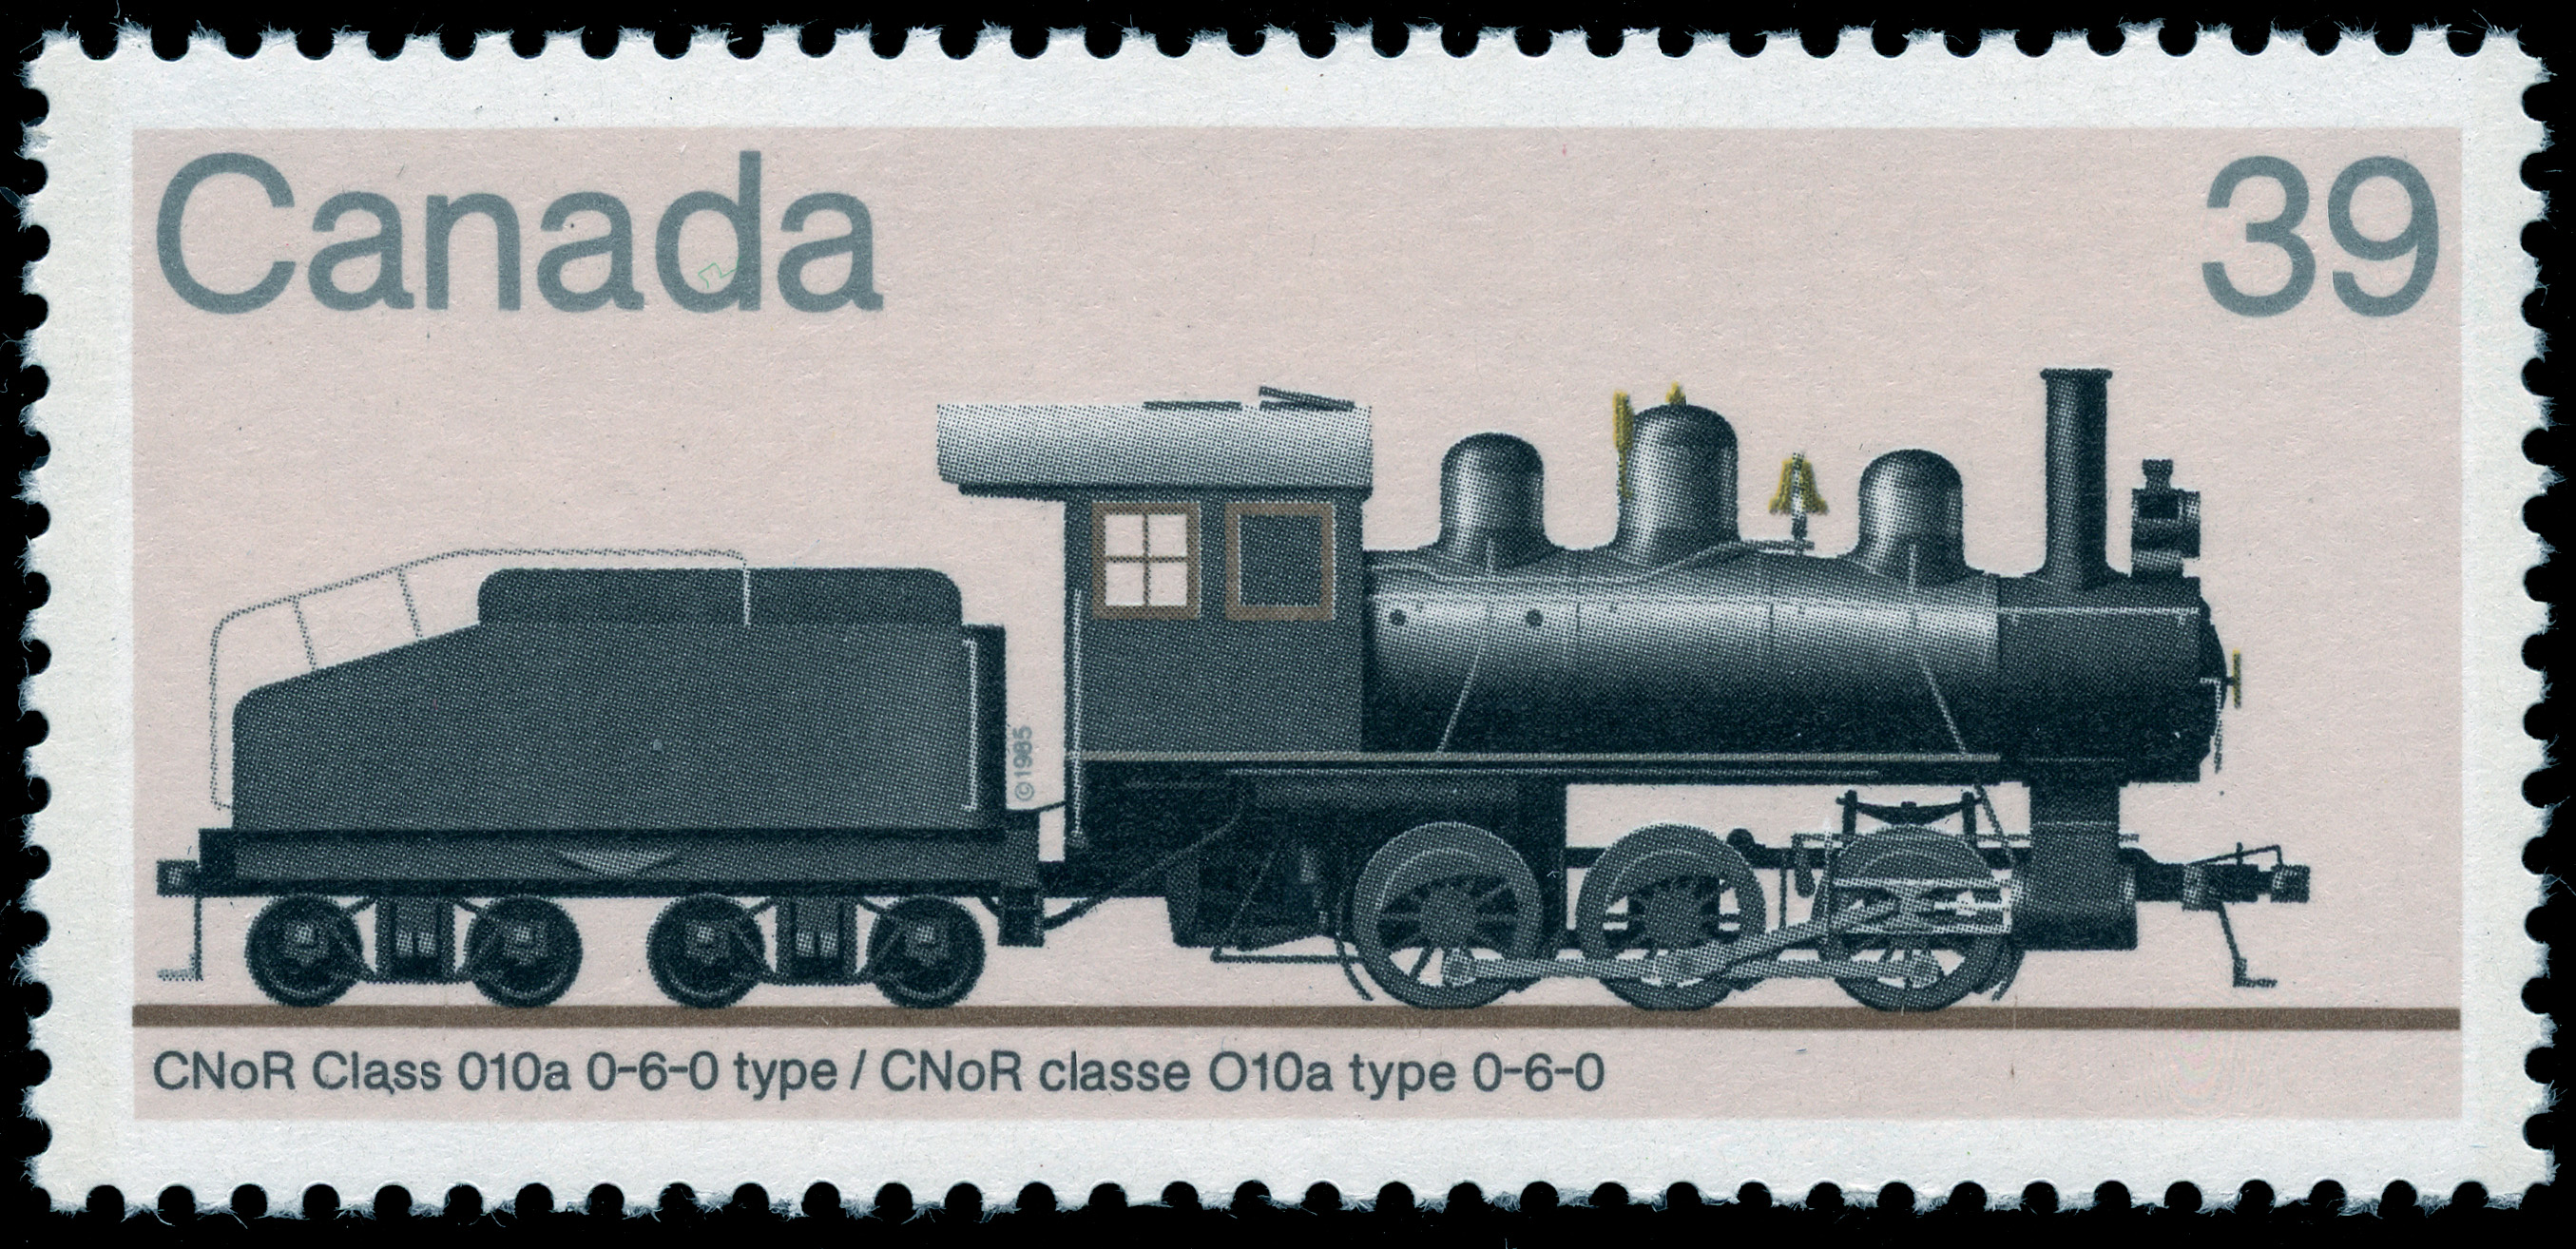 CNoR Class 010a 0-6-0 Type Canada Postage Stamp